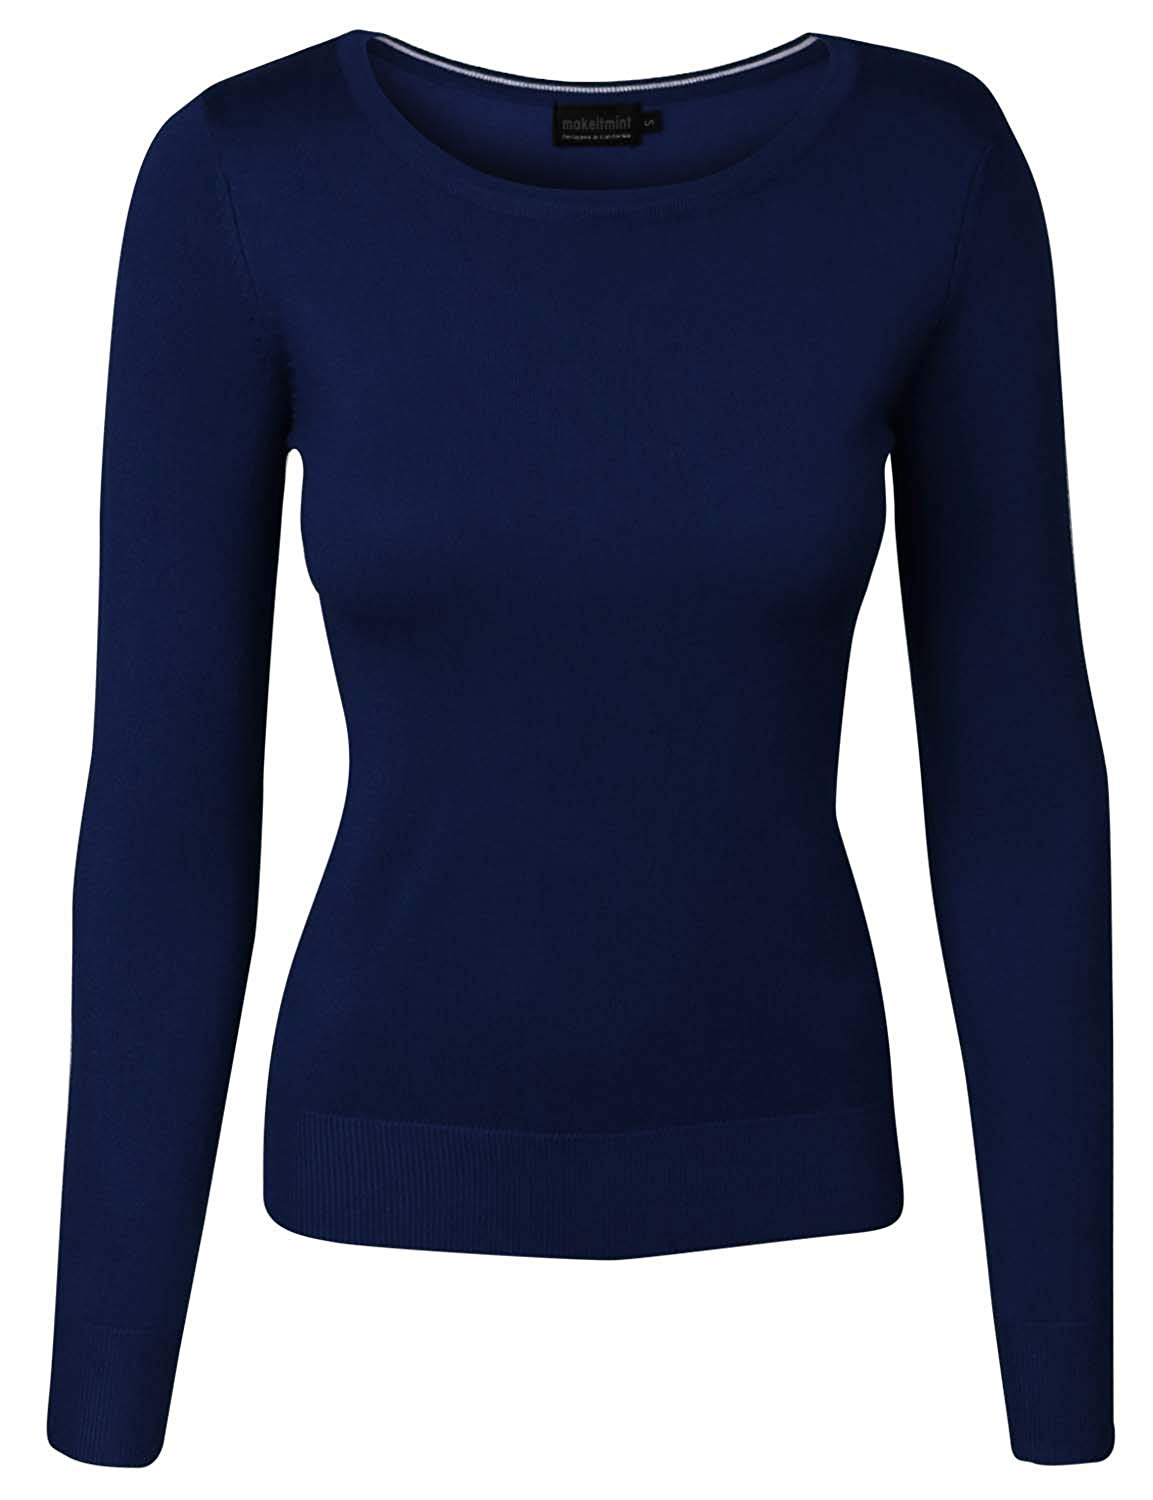 makeitmint Women's Solid Round V-Neck Soft Knit Long Sleeve Sweater [S-3XL]